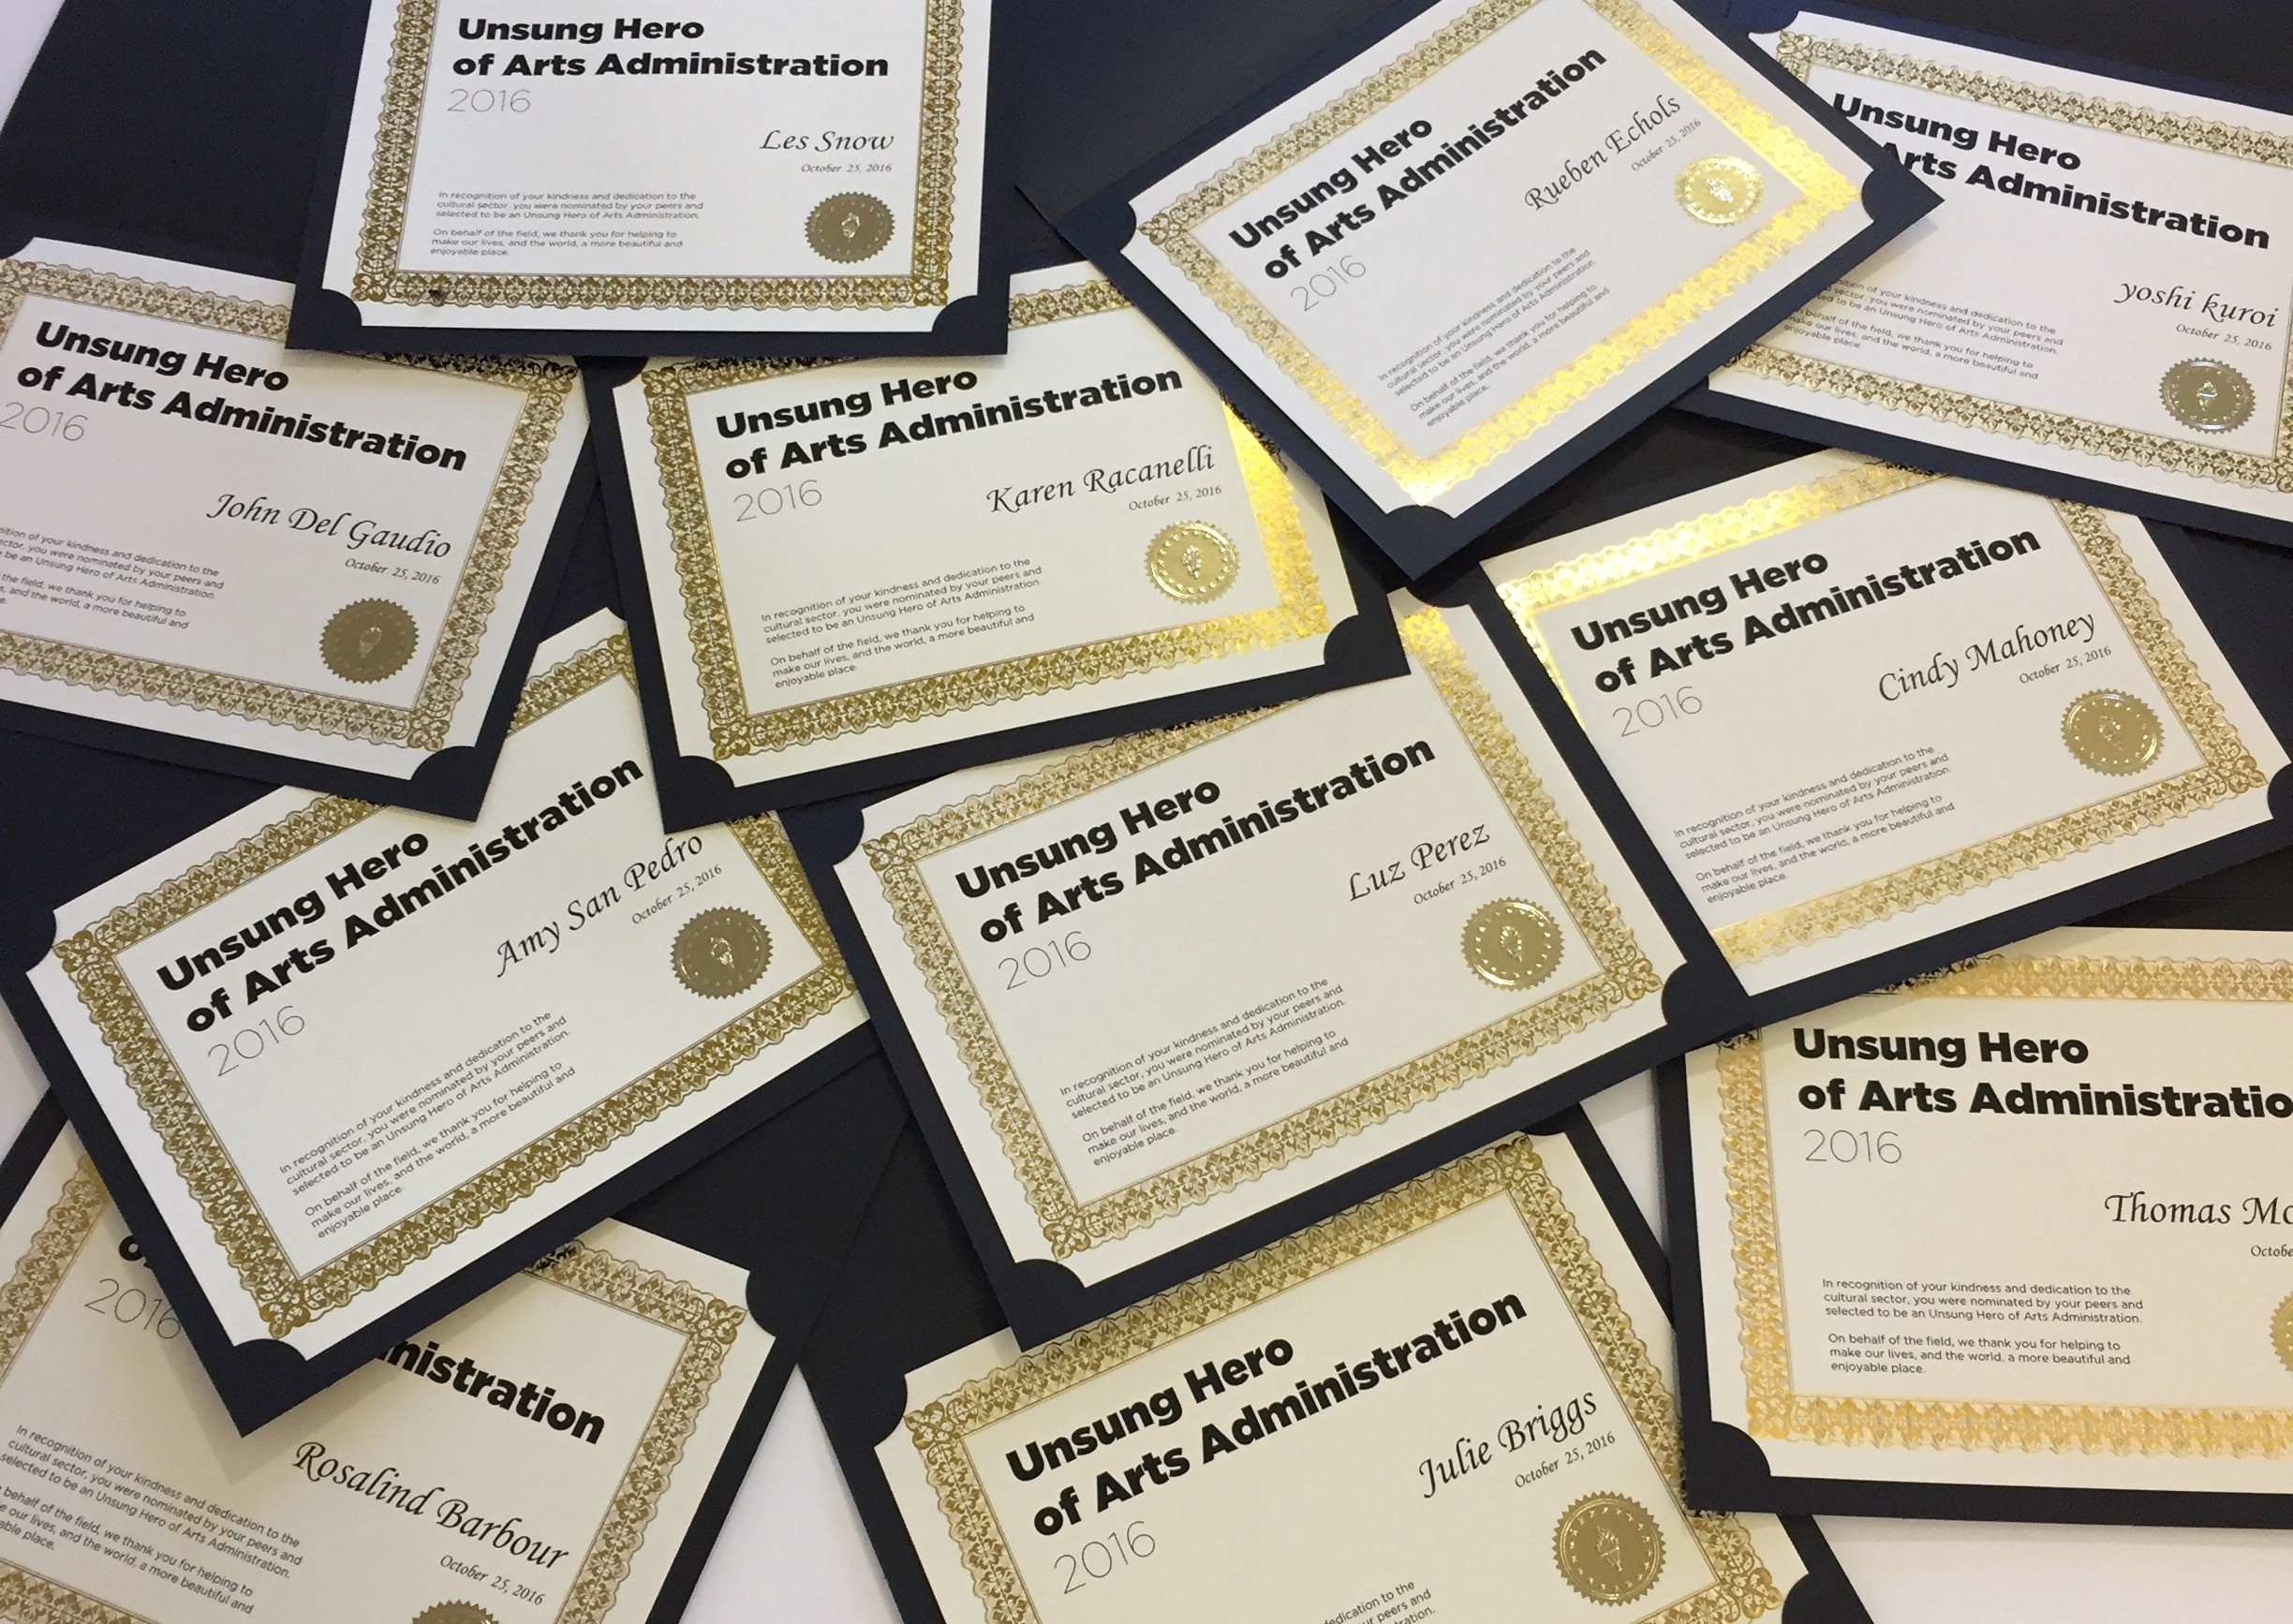 Unsung Heroes of Arts Administration Award Certificates